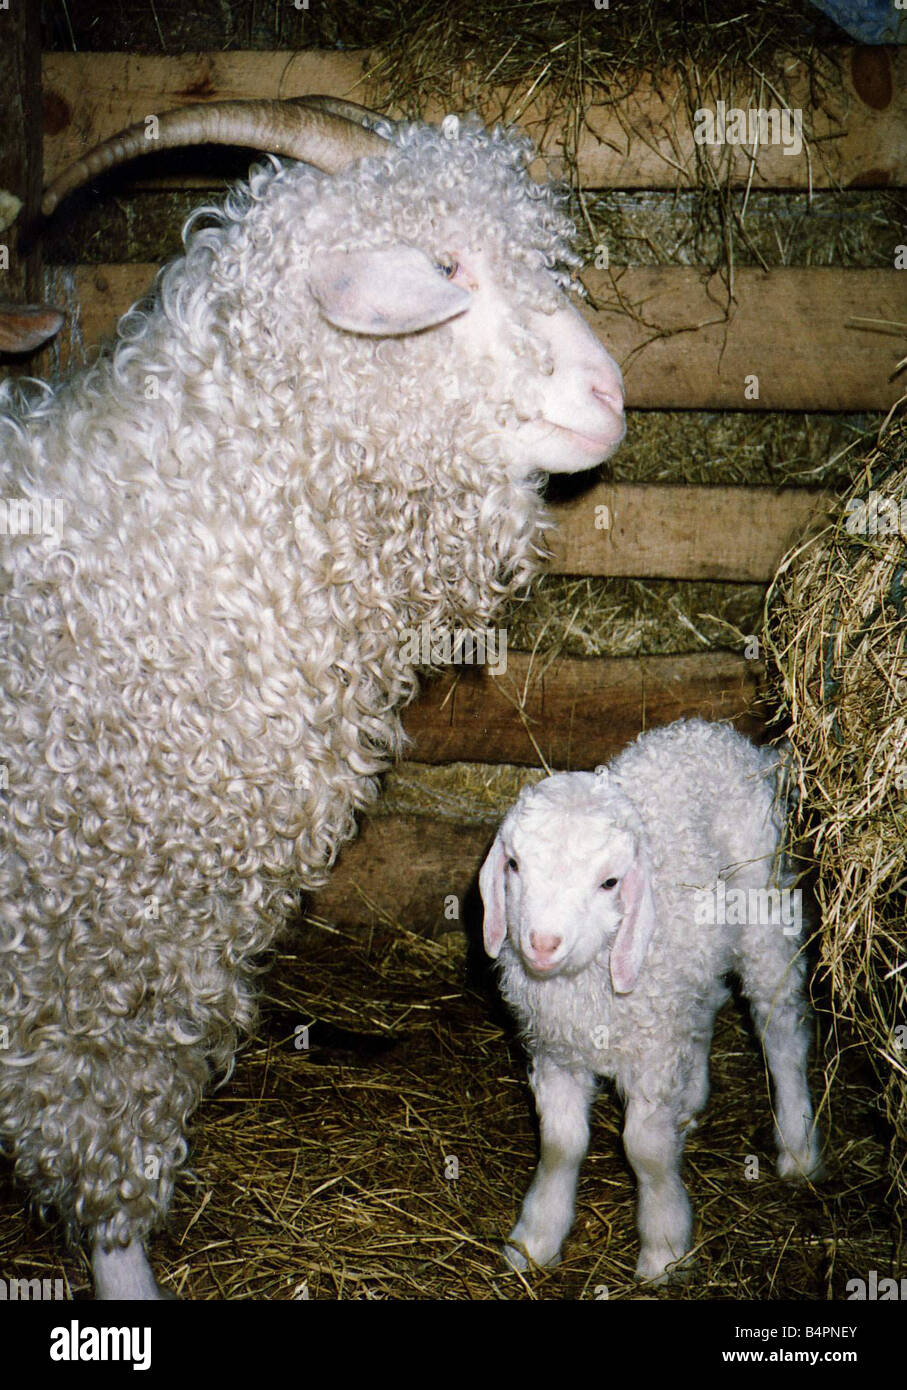 Stock Photo, Royalty-Free Image Prices and Plans - Shutterstock   Vintage  illustration, Angora goats, Royalty free images